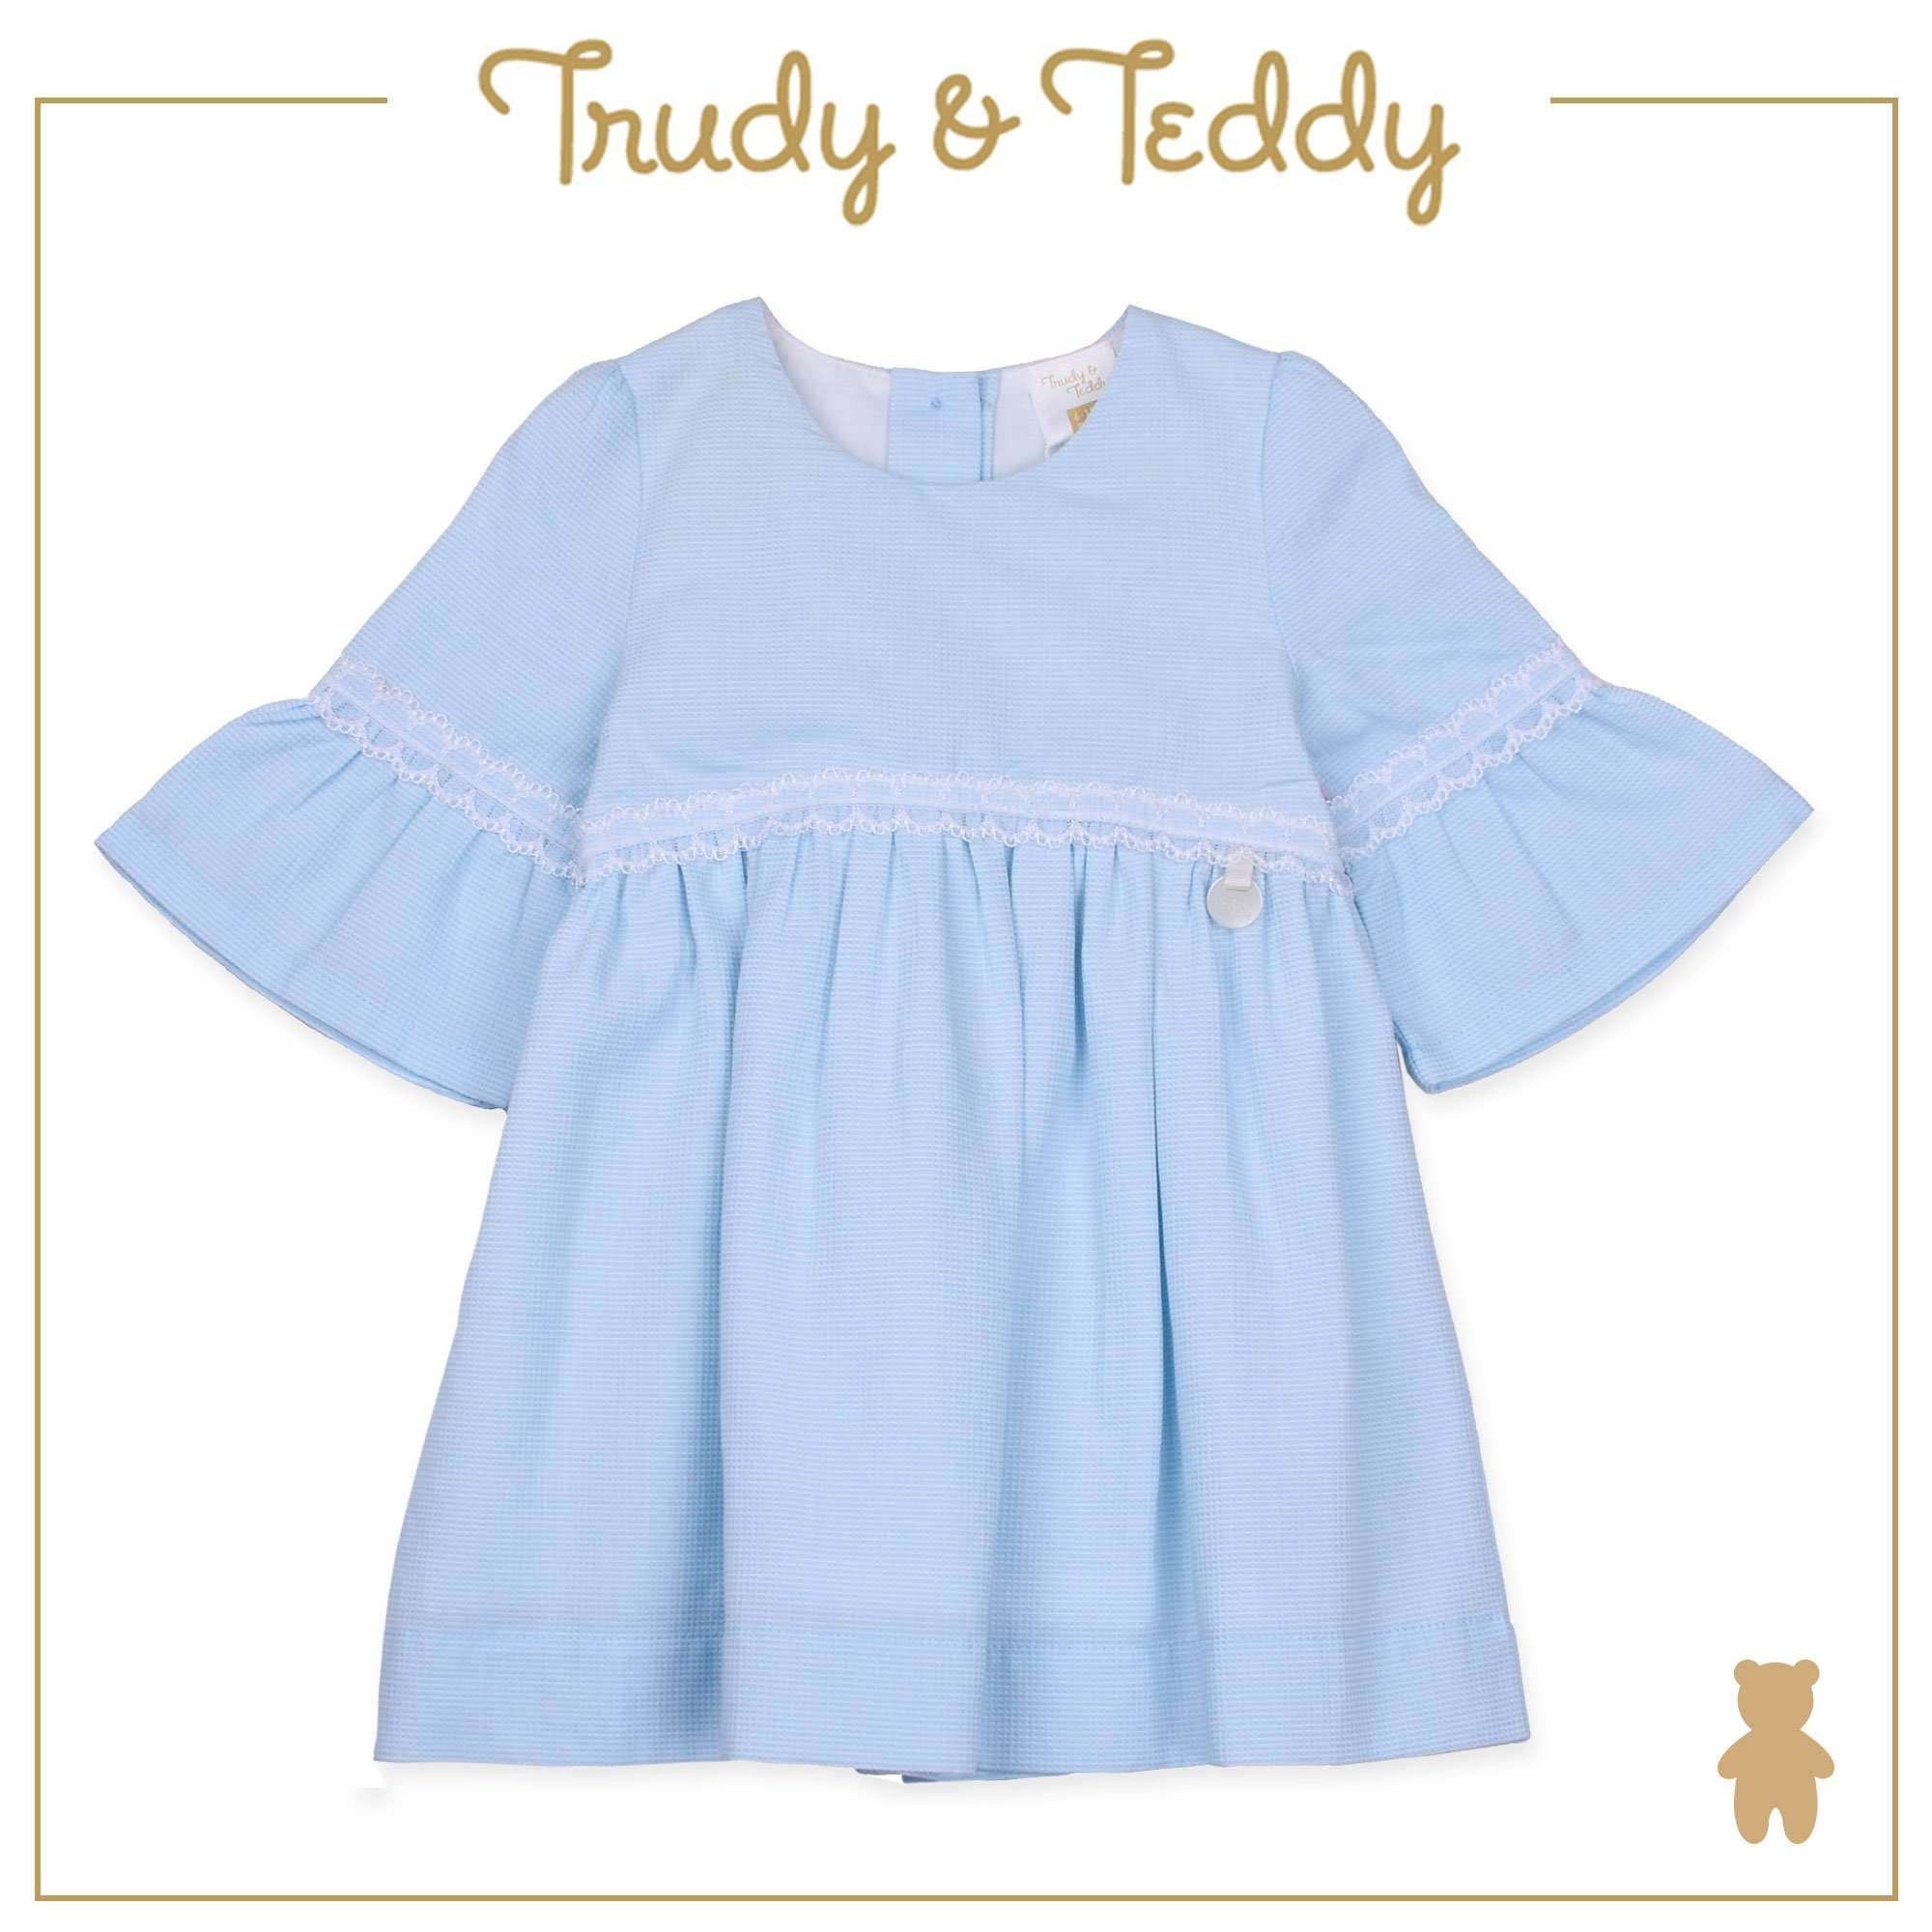 Trudy & Teddy Toddler to Kid Girl Short Sleeve Dress - Light Blue T925002-3102-L1 : Buy Trudy & Teddy online at CMG.MY